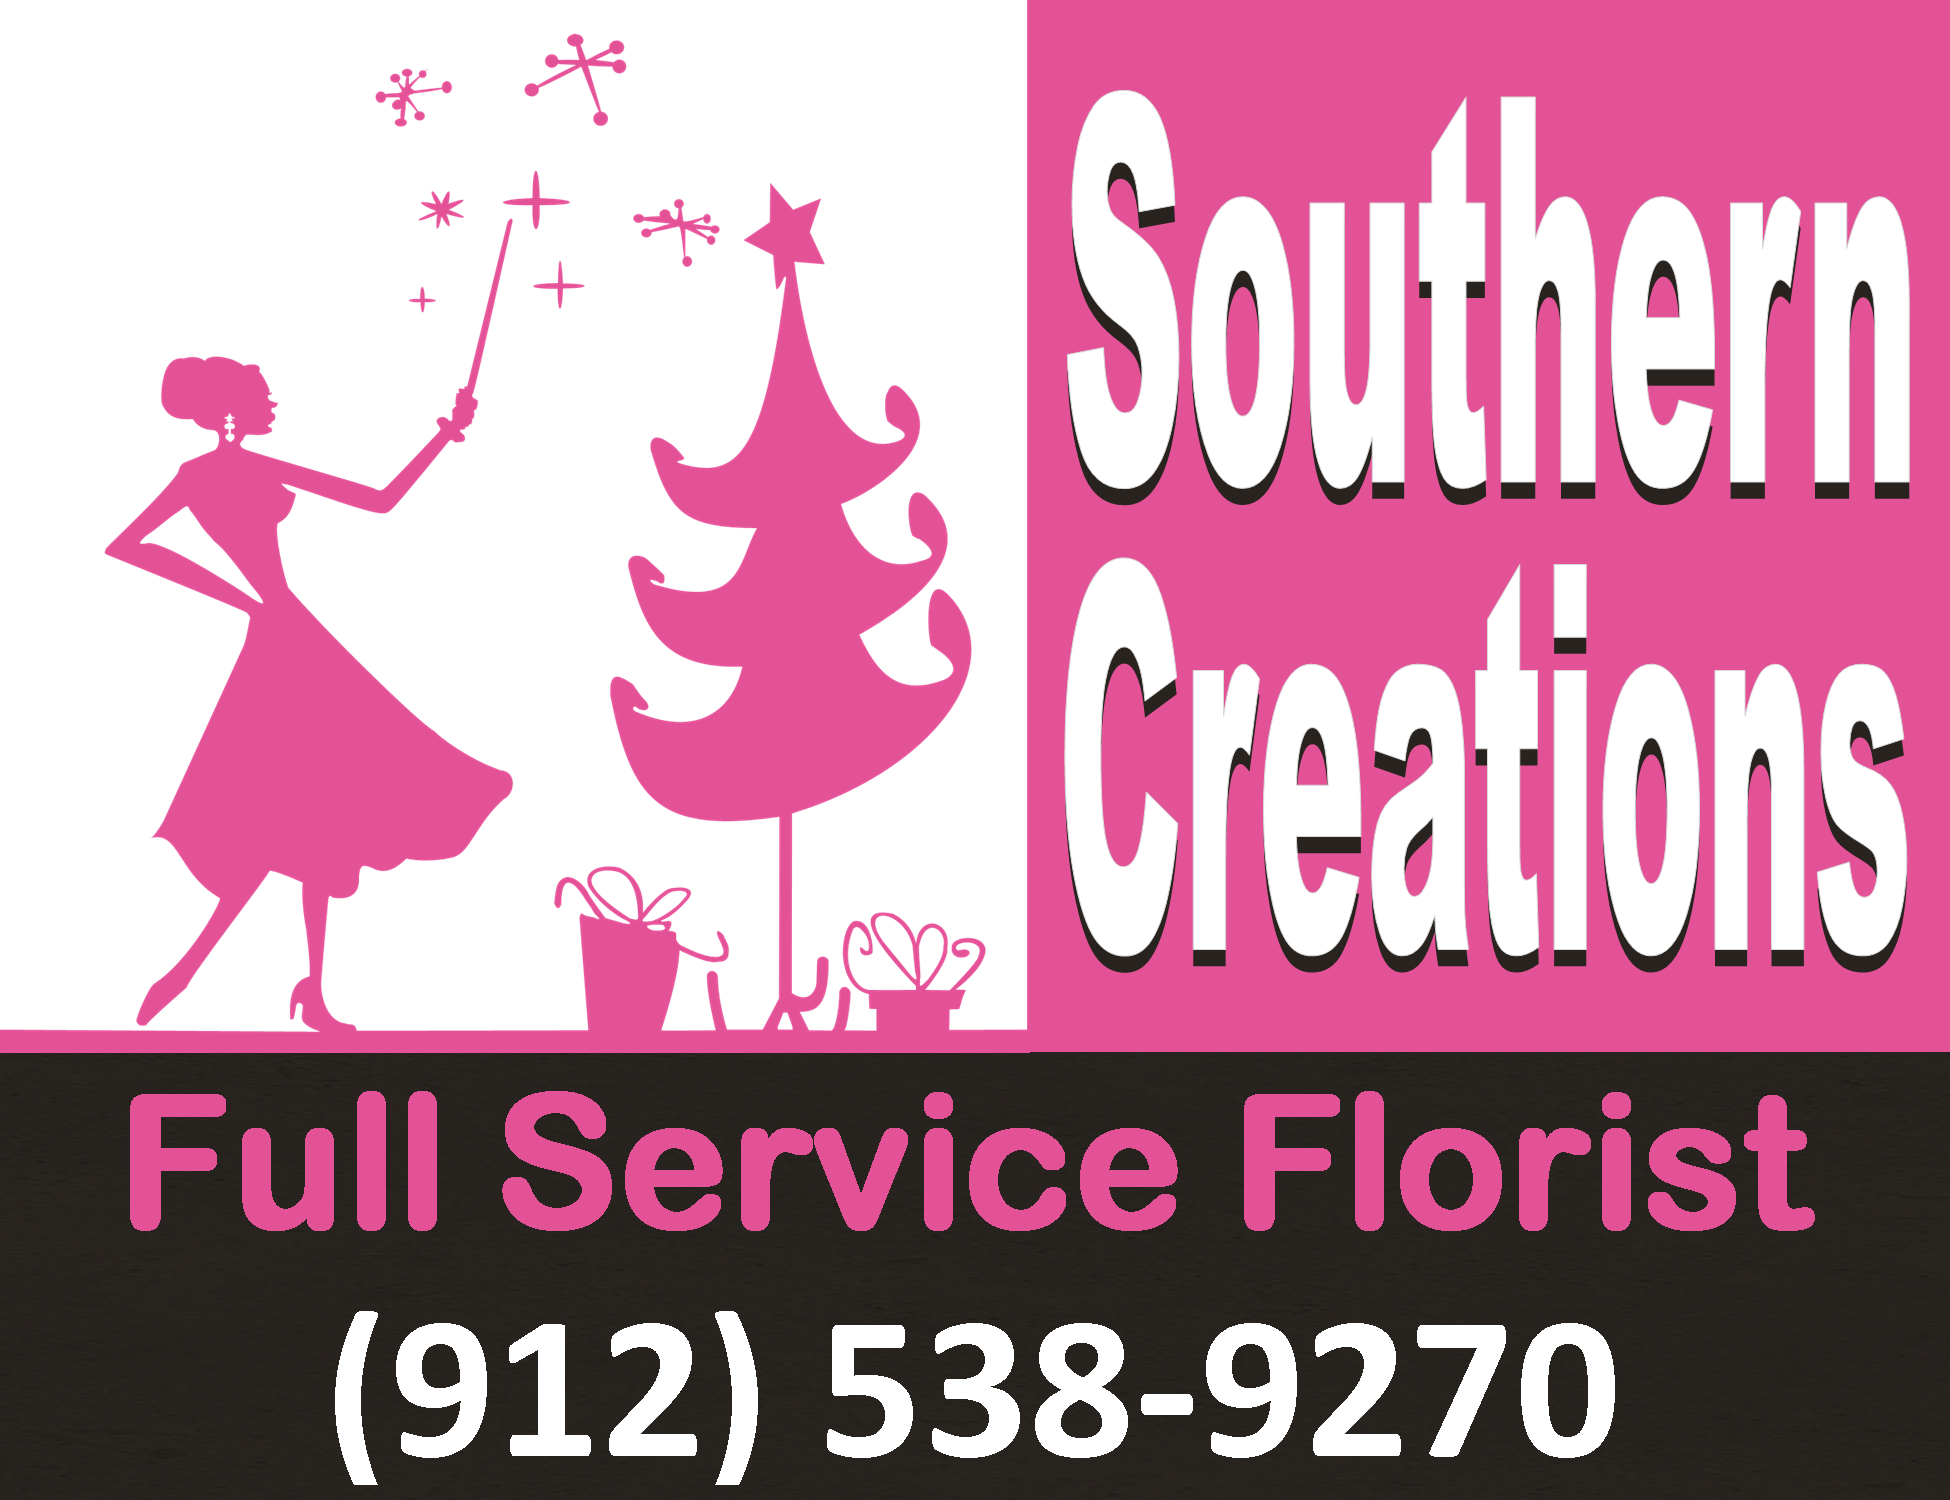 SouthernCreations